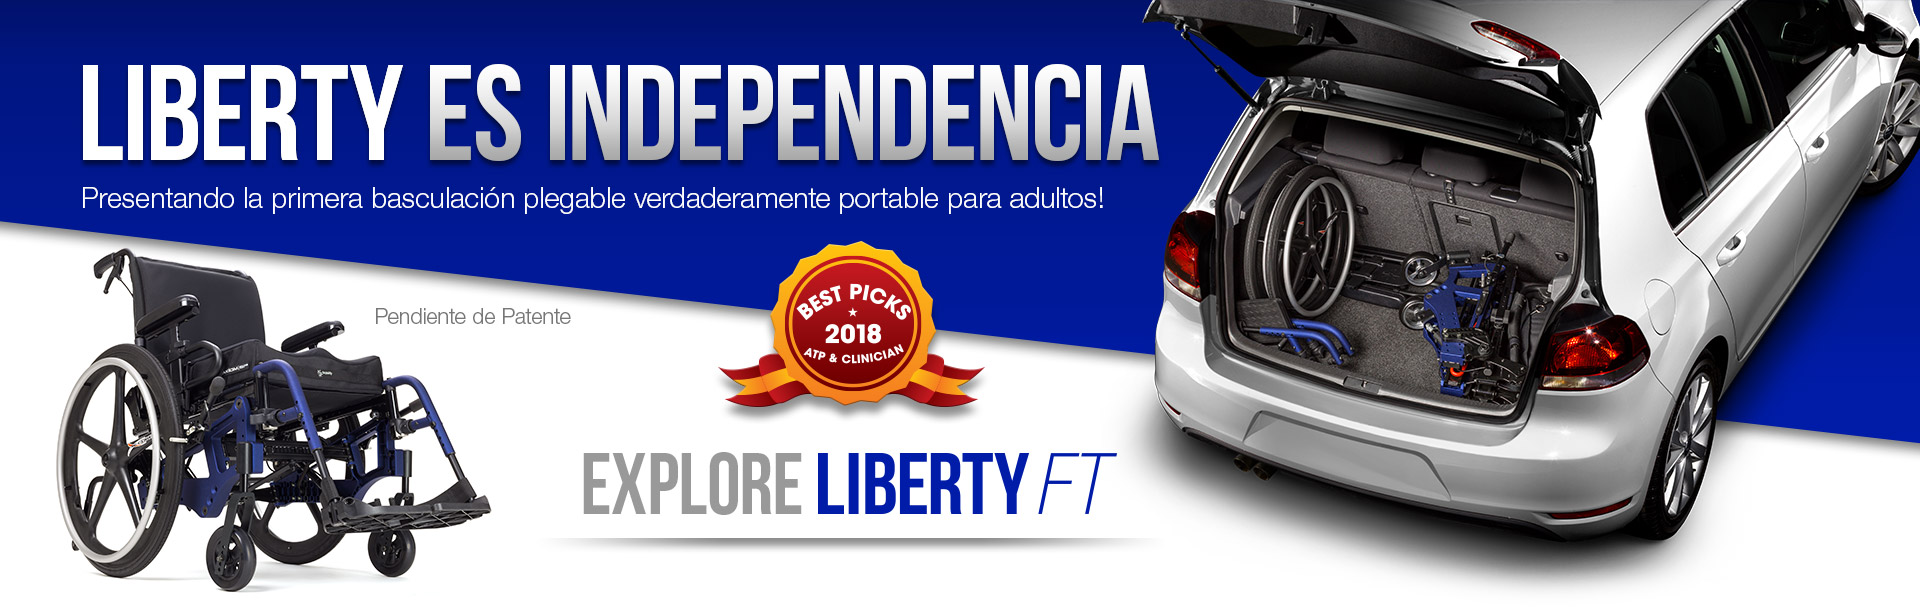 Liberty es Independencia!